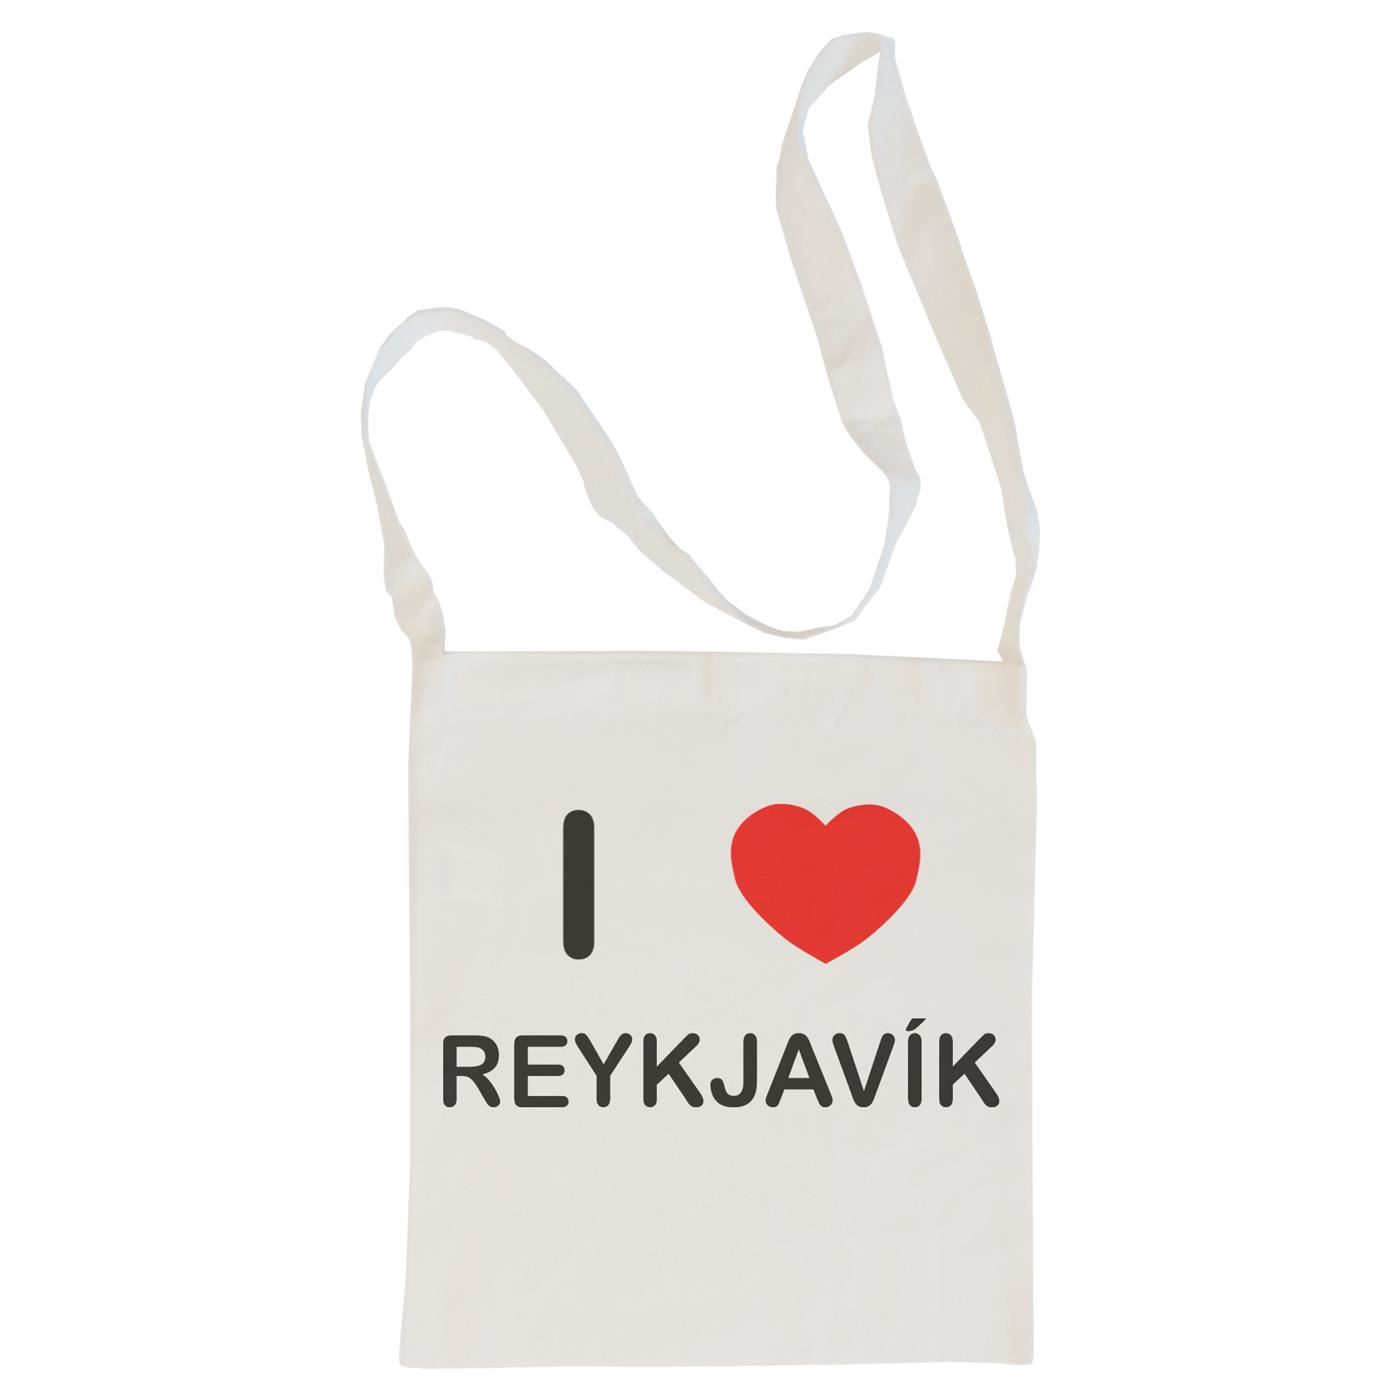 I Love Reykjavik - Cotton Bag | Size choice Tote, Shopper or Sling